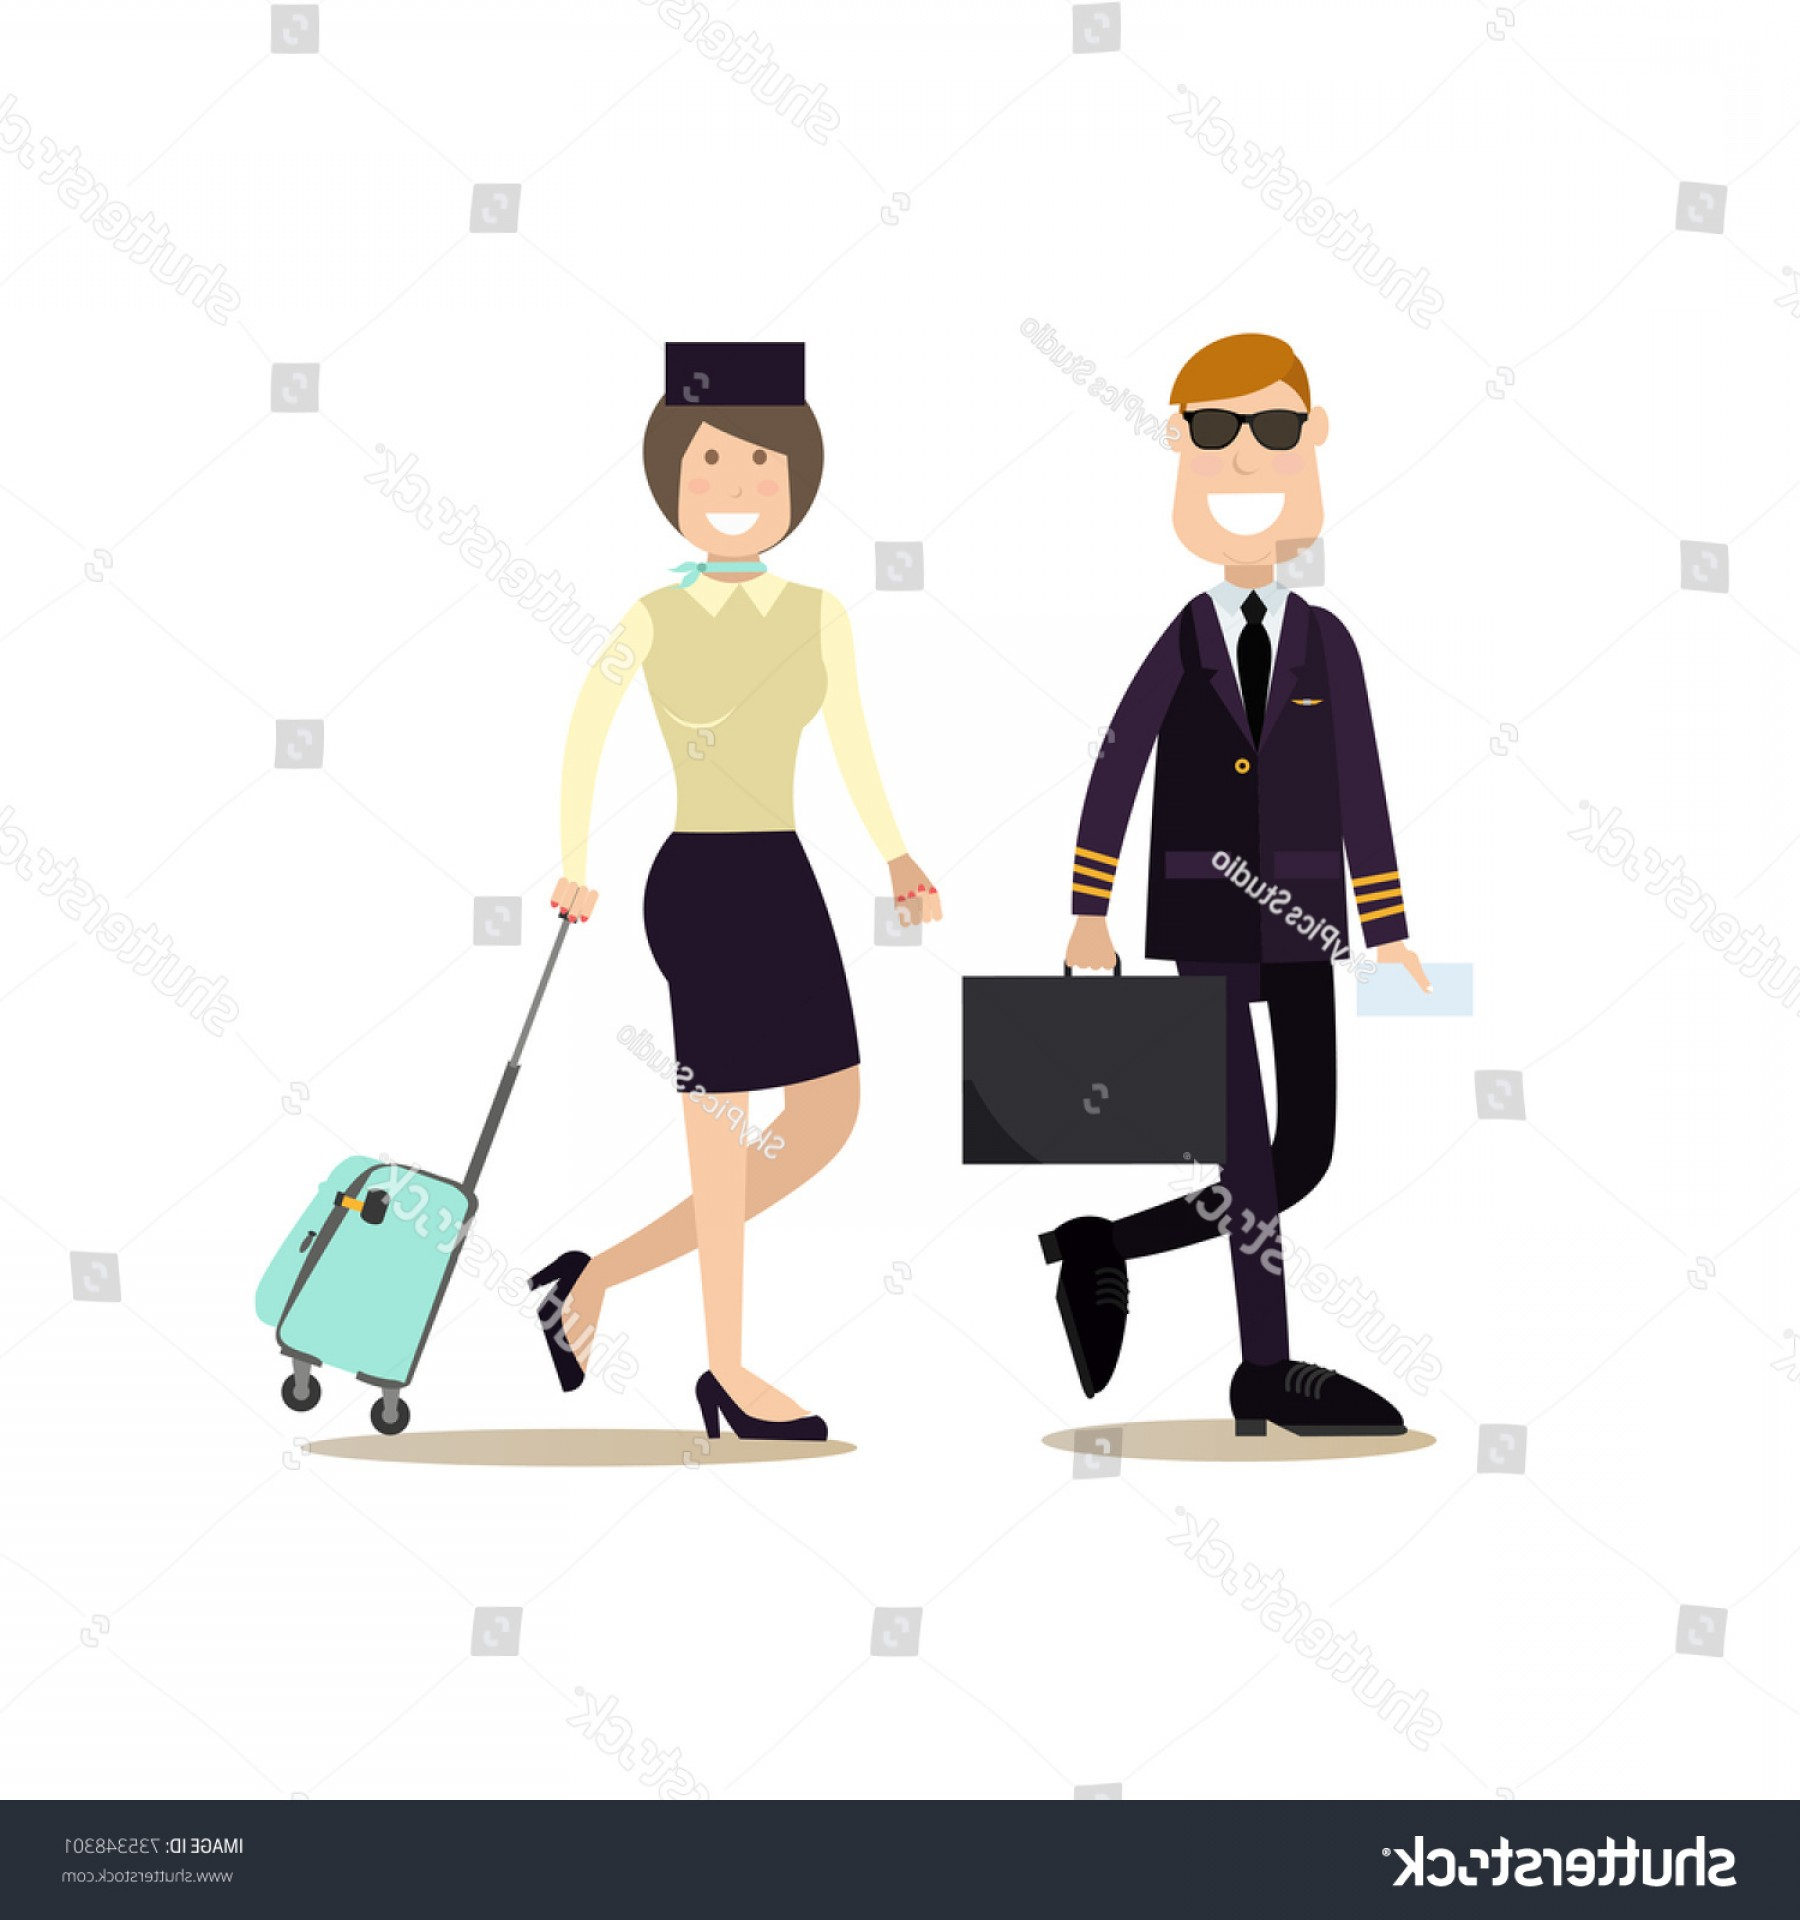 Vector Man Working In Cabin: Vector Illustration Pilot Stewardess Luggage Airline